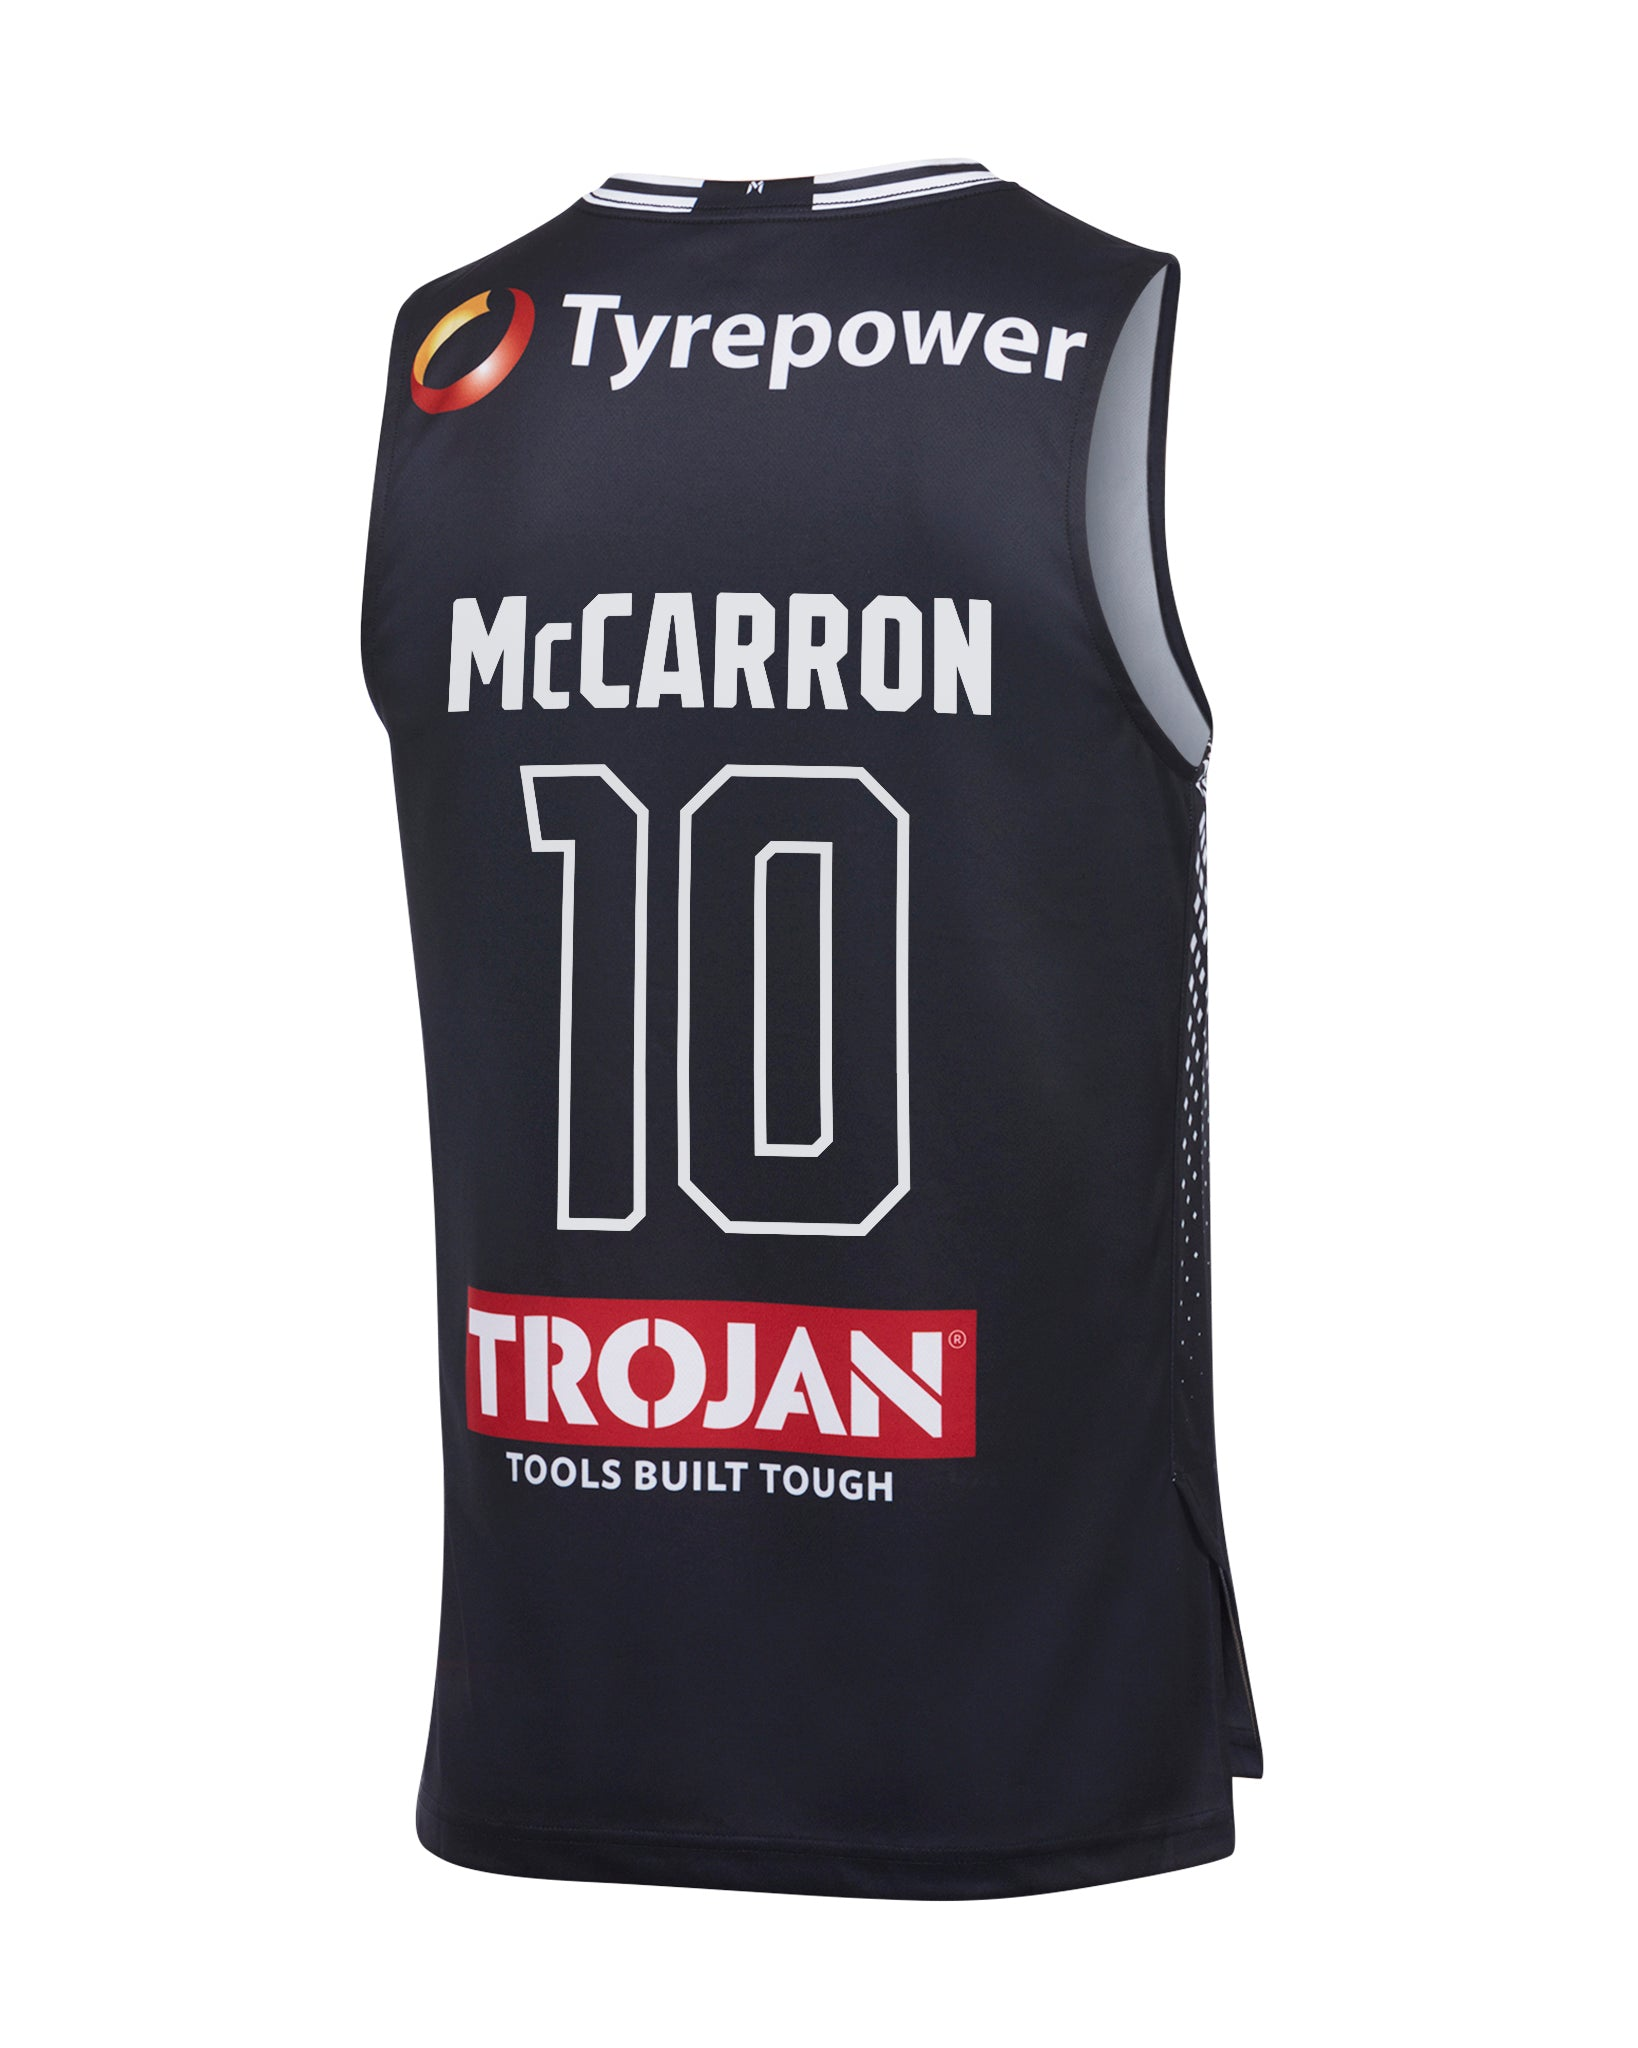 melbourne-united-19-20-authentic-home-jersey-mitch-mccarron - Back Image